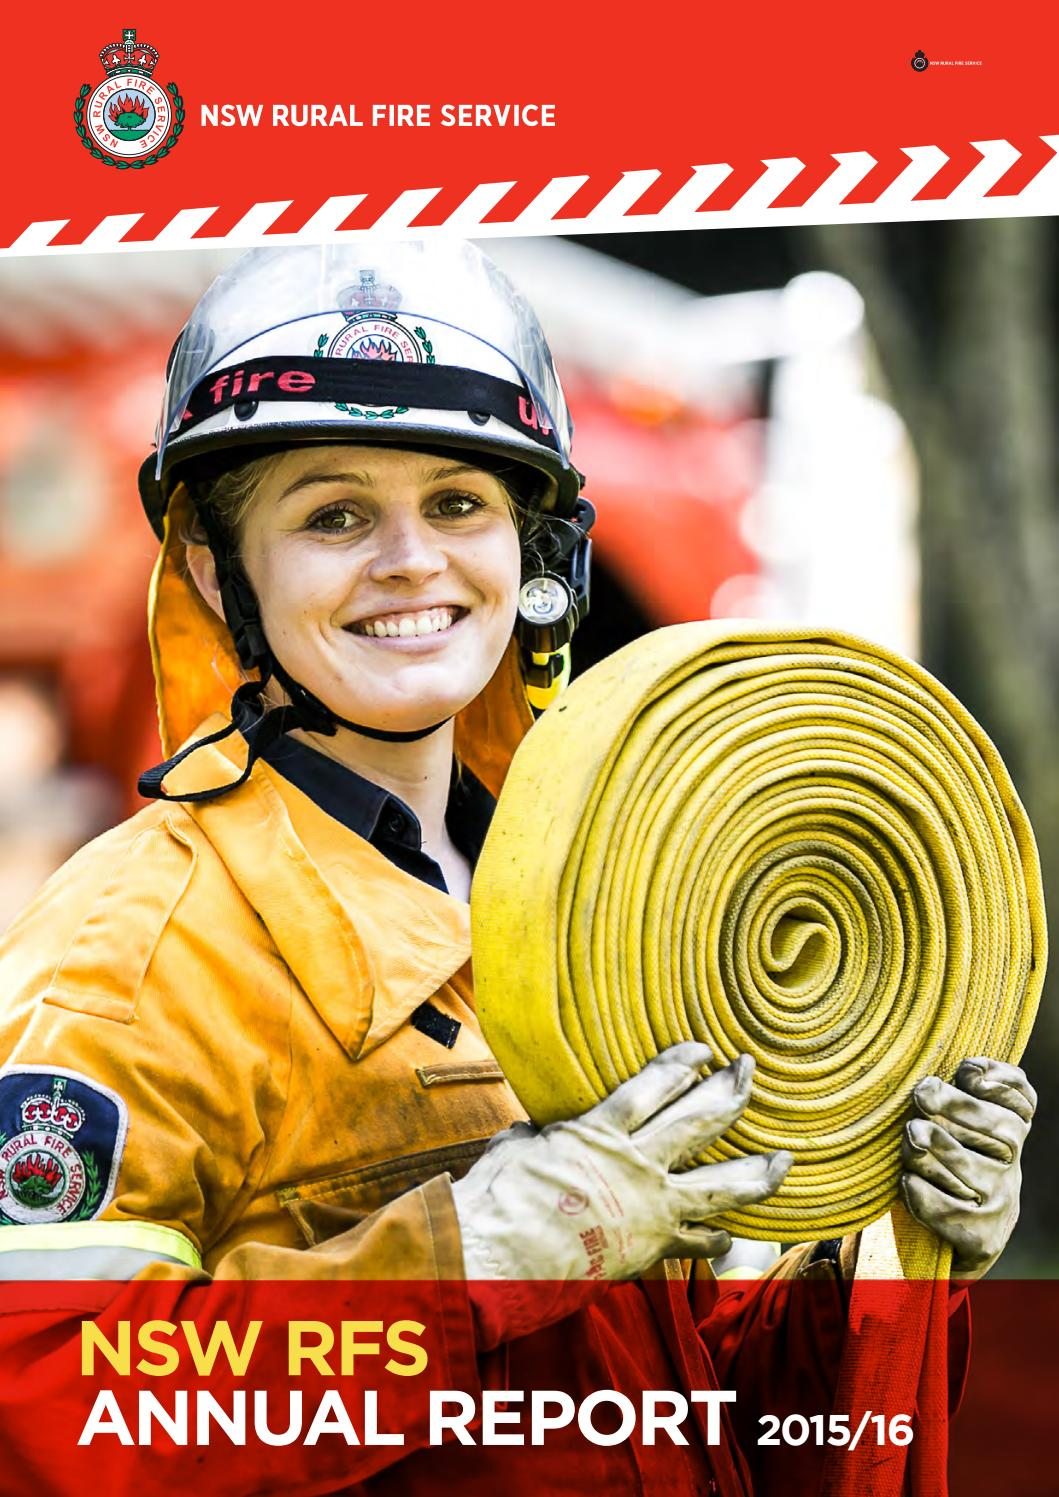 Complete Nsw Rfs Annual Report 2015 16 By Nsw Rural Fire